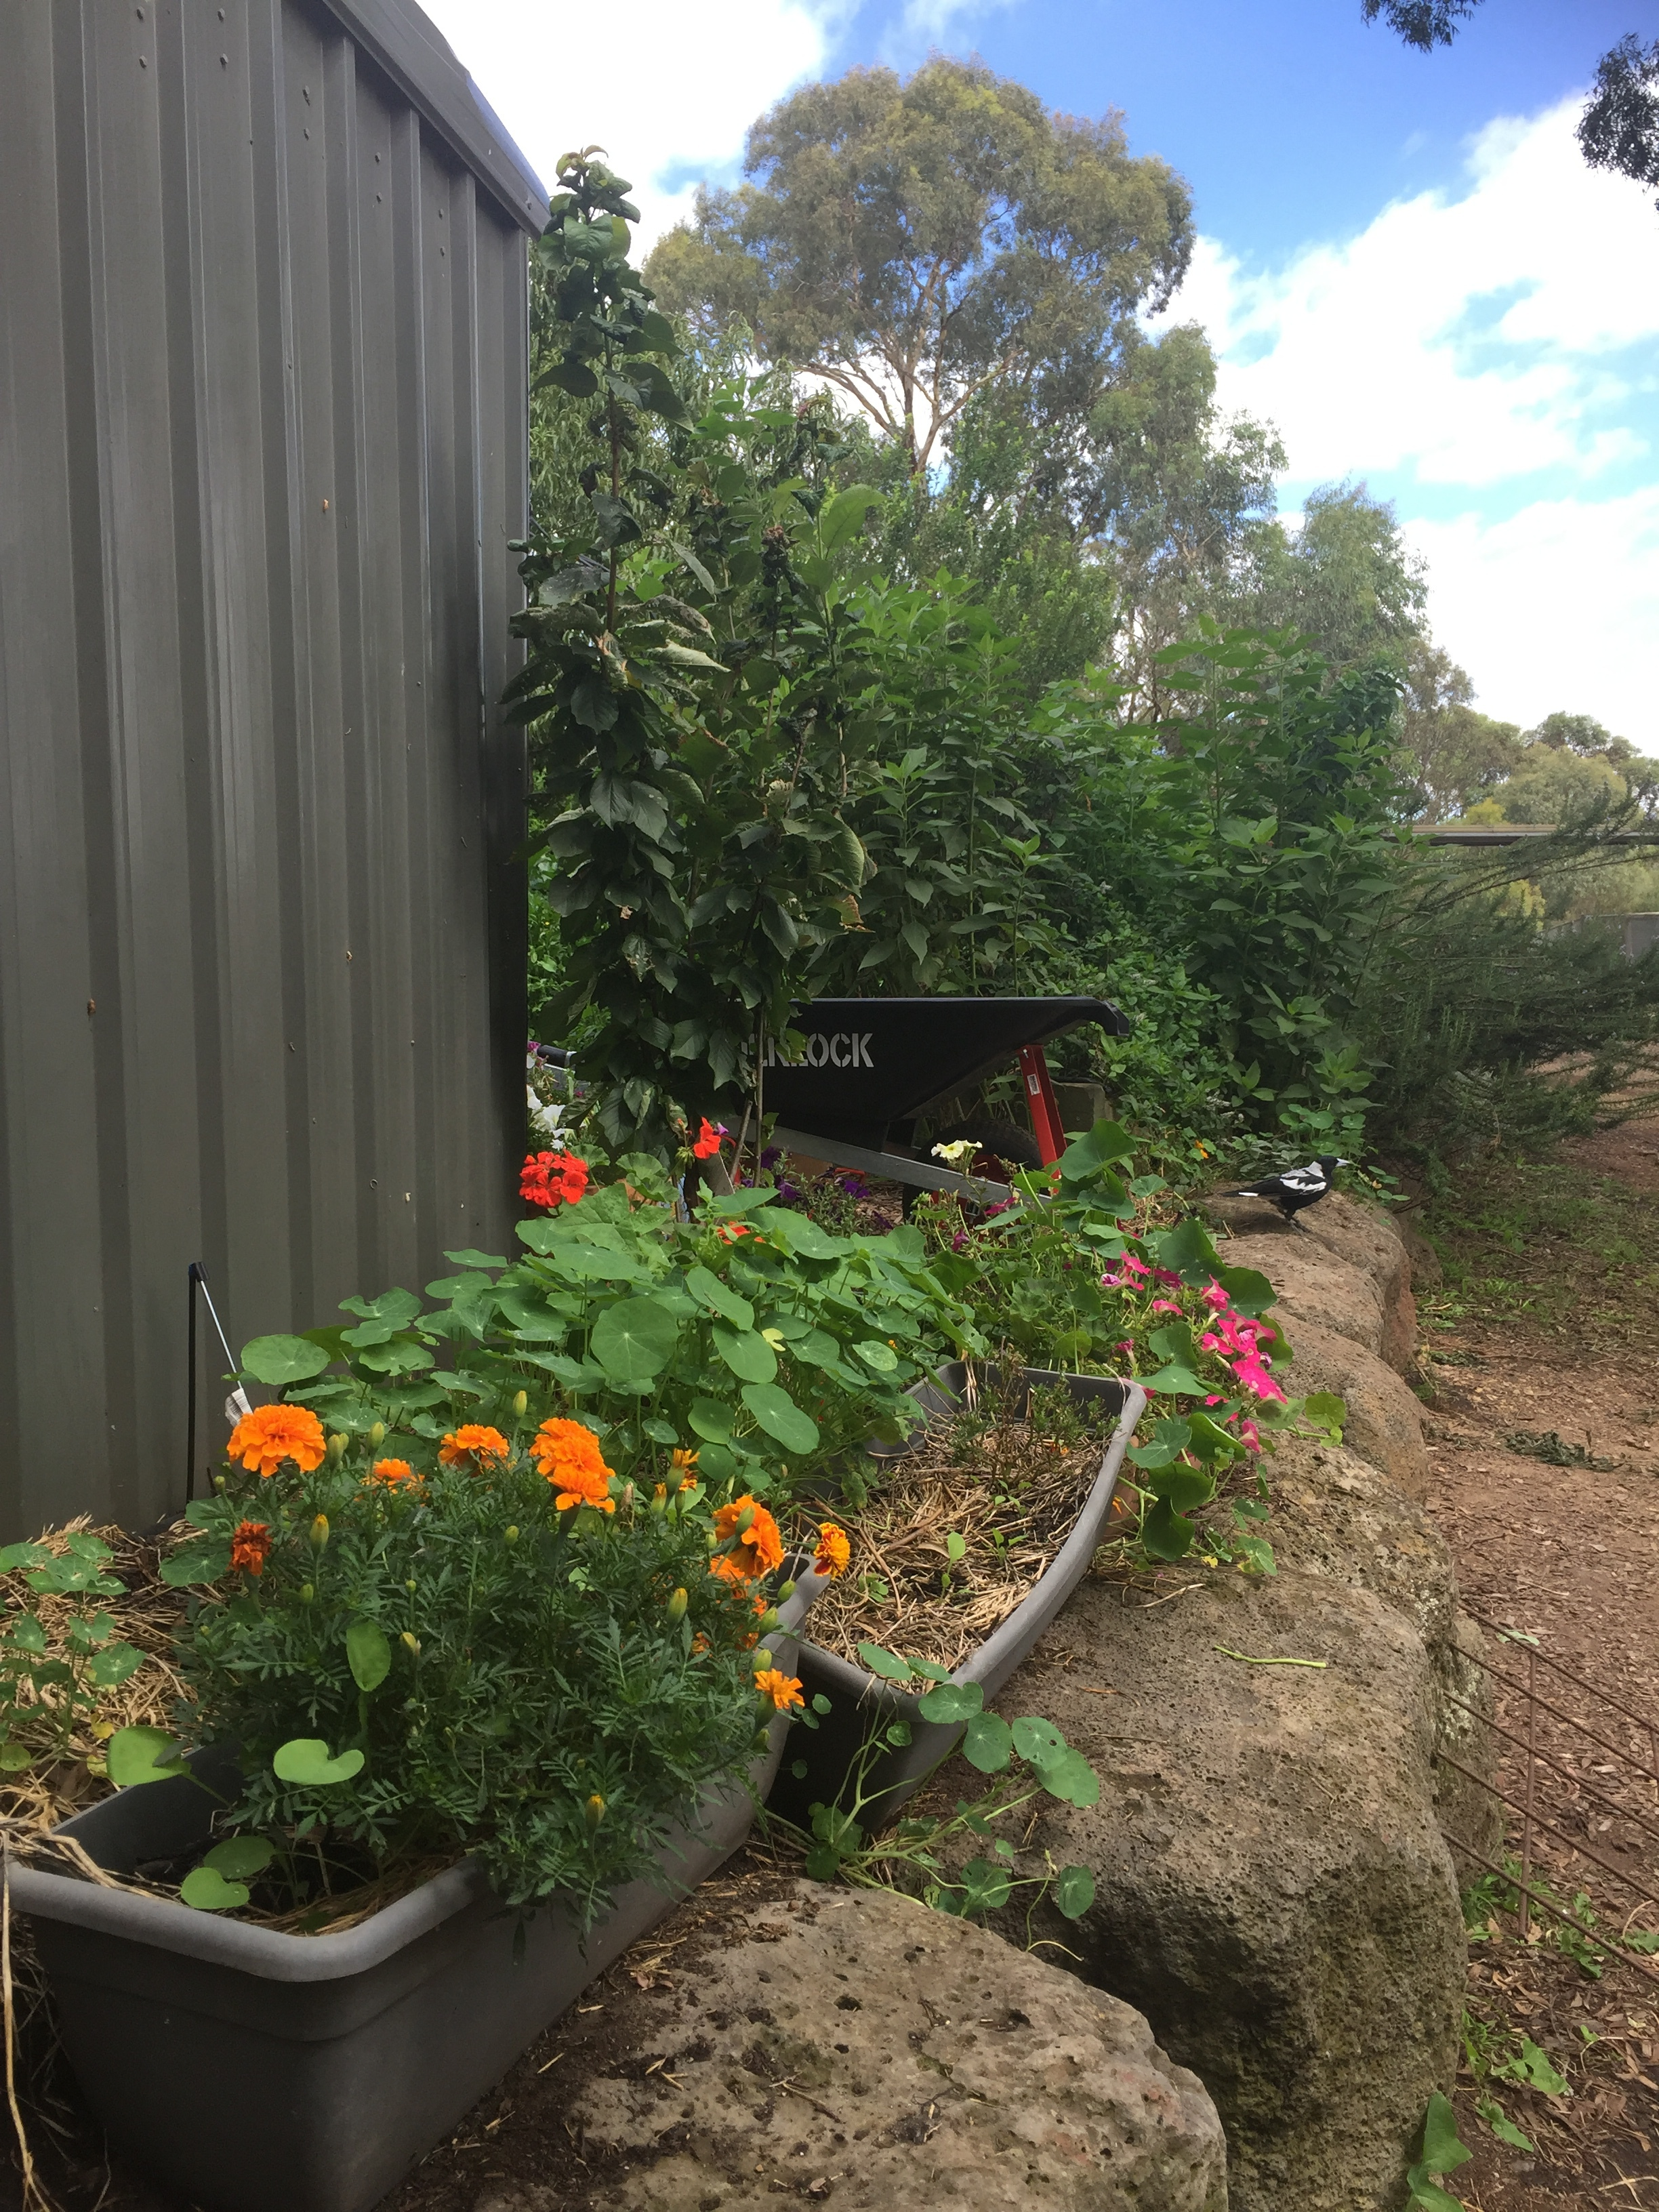 The Kitchen Garden thrives with fresh produce, herbs and companion planting.